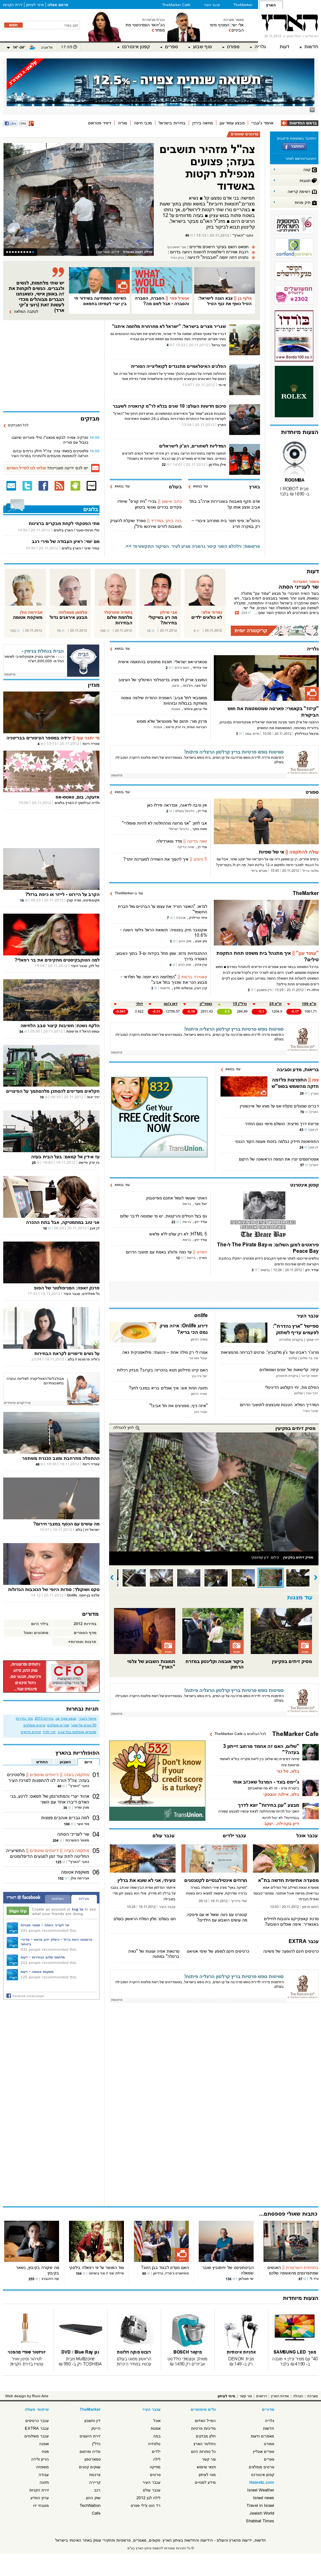 Haaretz at Tuesday Nov. 20, 2012, 3:11 p.m. UTC